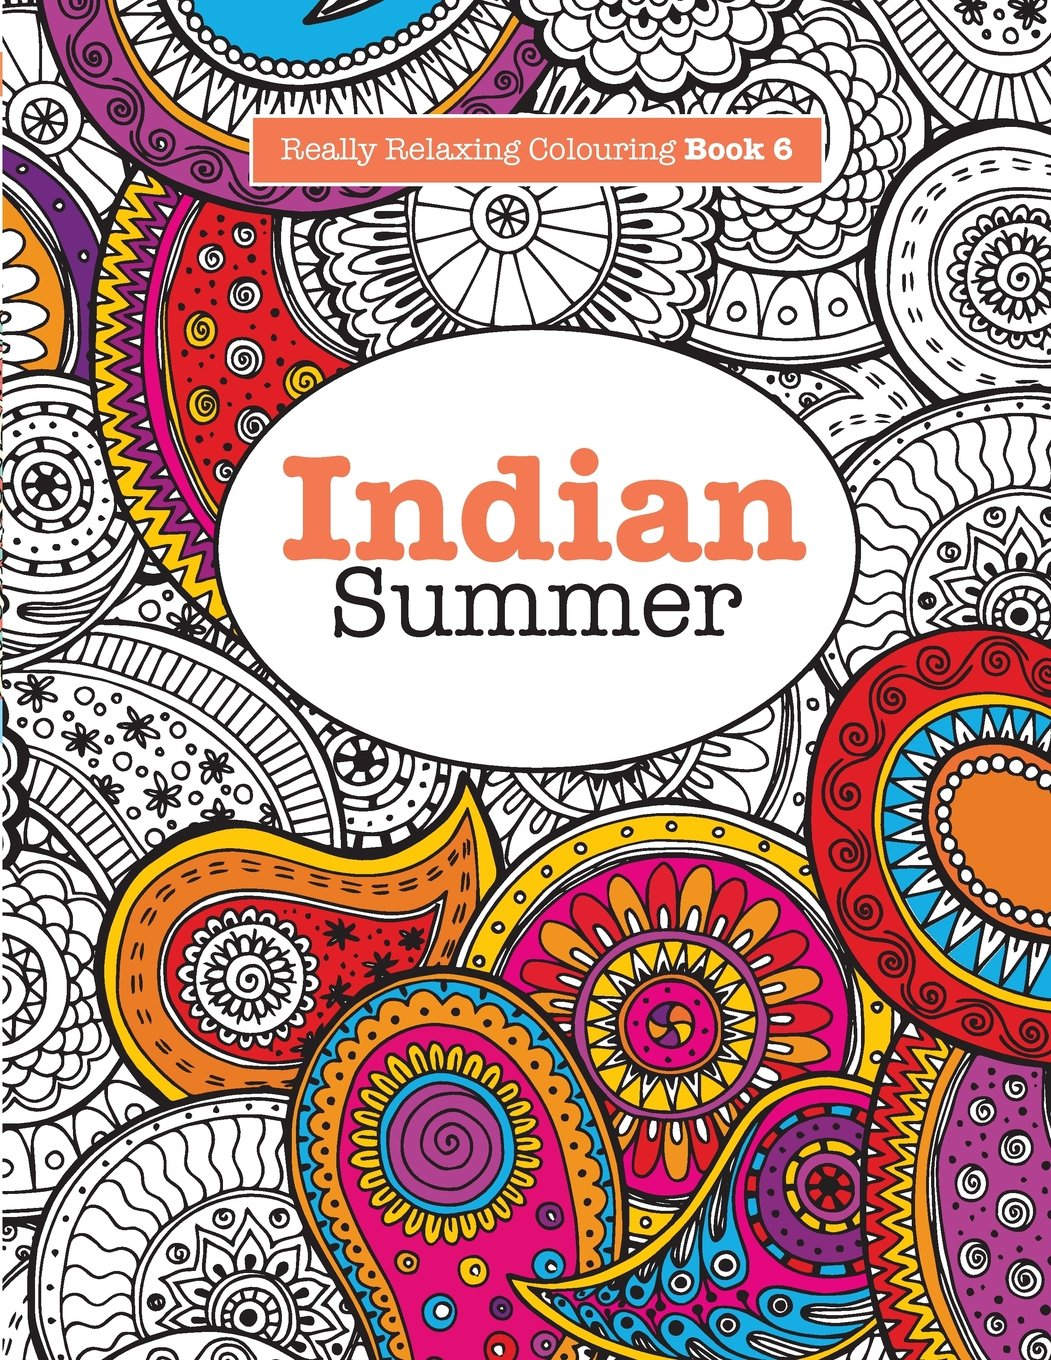 Amazon.com: Really RELAXING Colouring Book 6: Indian Summer: A ...